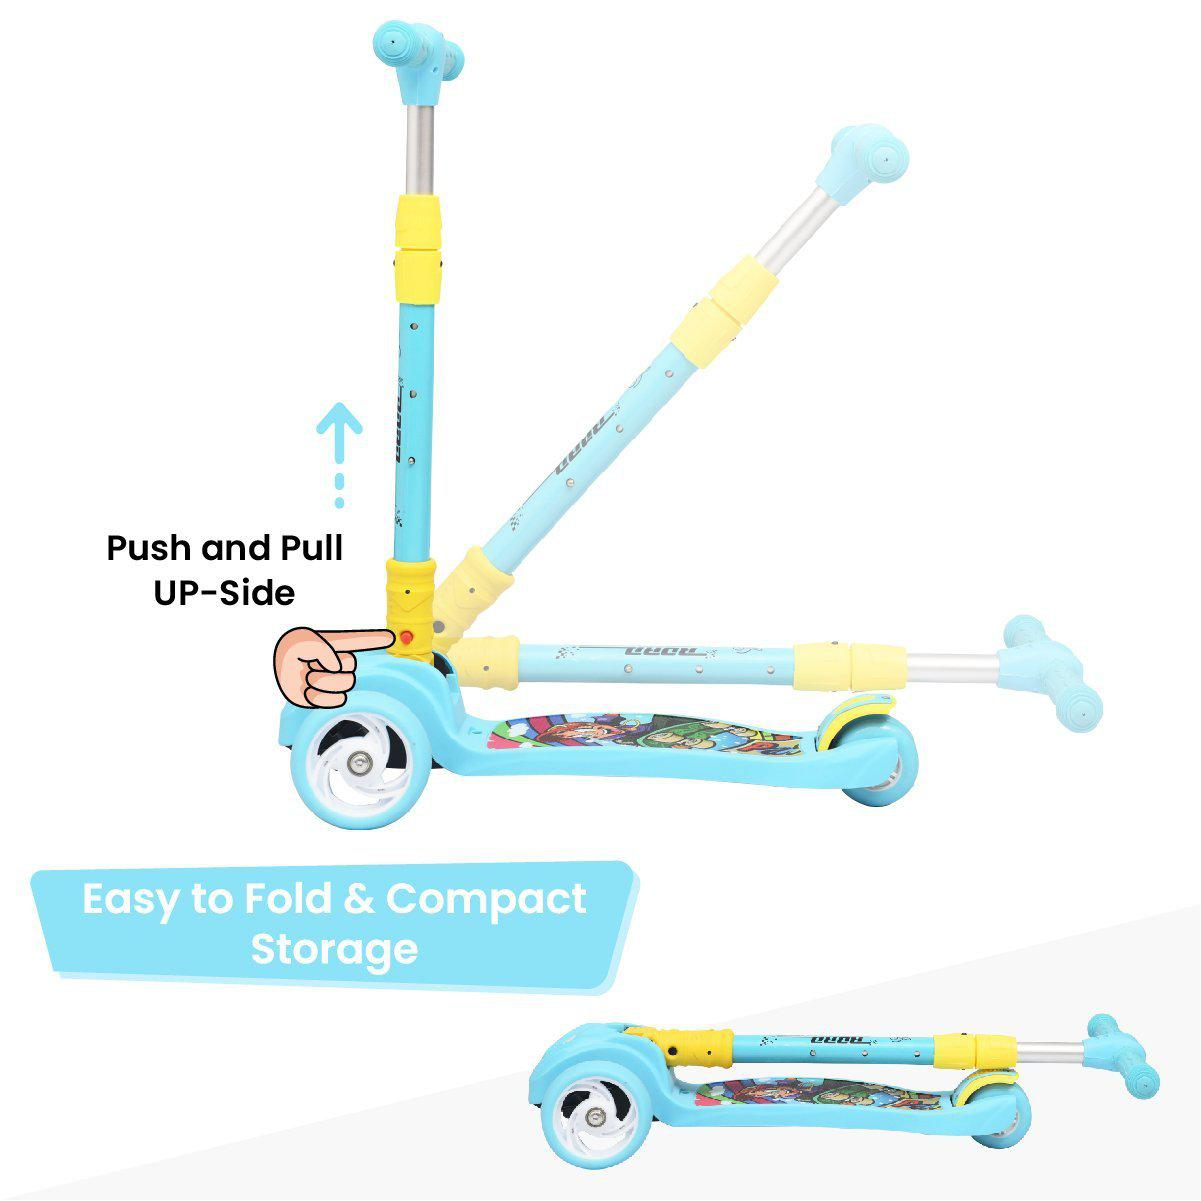 R for Rabbit Road Runner Scooter for Kids - The Smart Kick Scooter for Kids